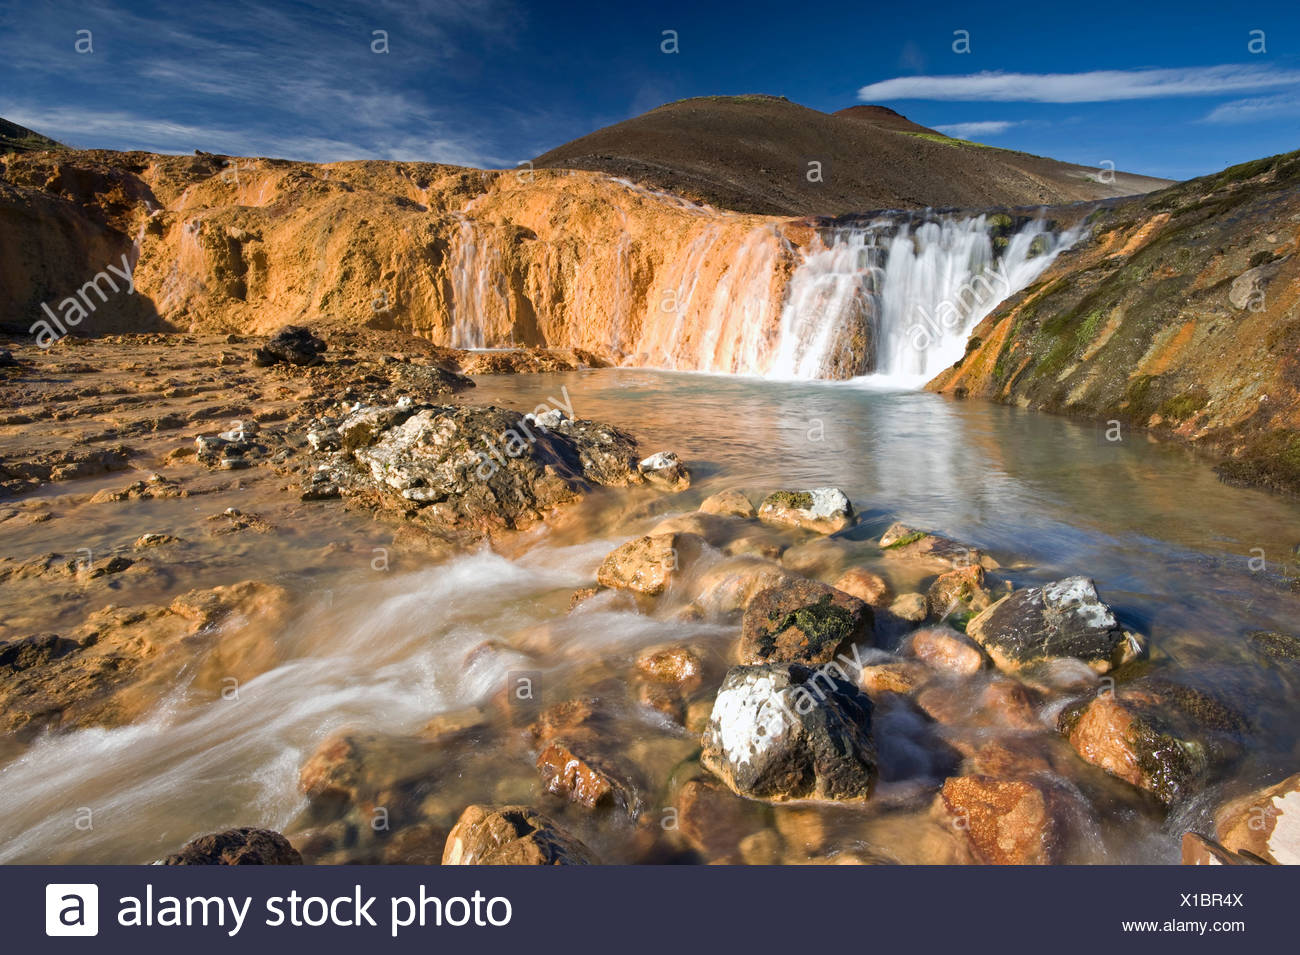 Bicolored waterfall near Hauhverir, Fjallabak Nature Reserve, Highlands of Iceland, Iceland, Europe Stock Photo